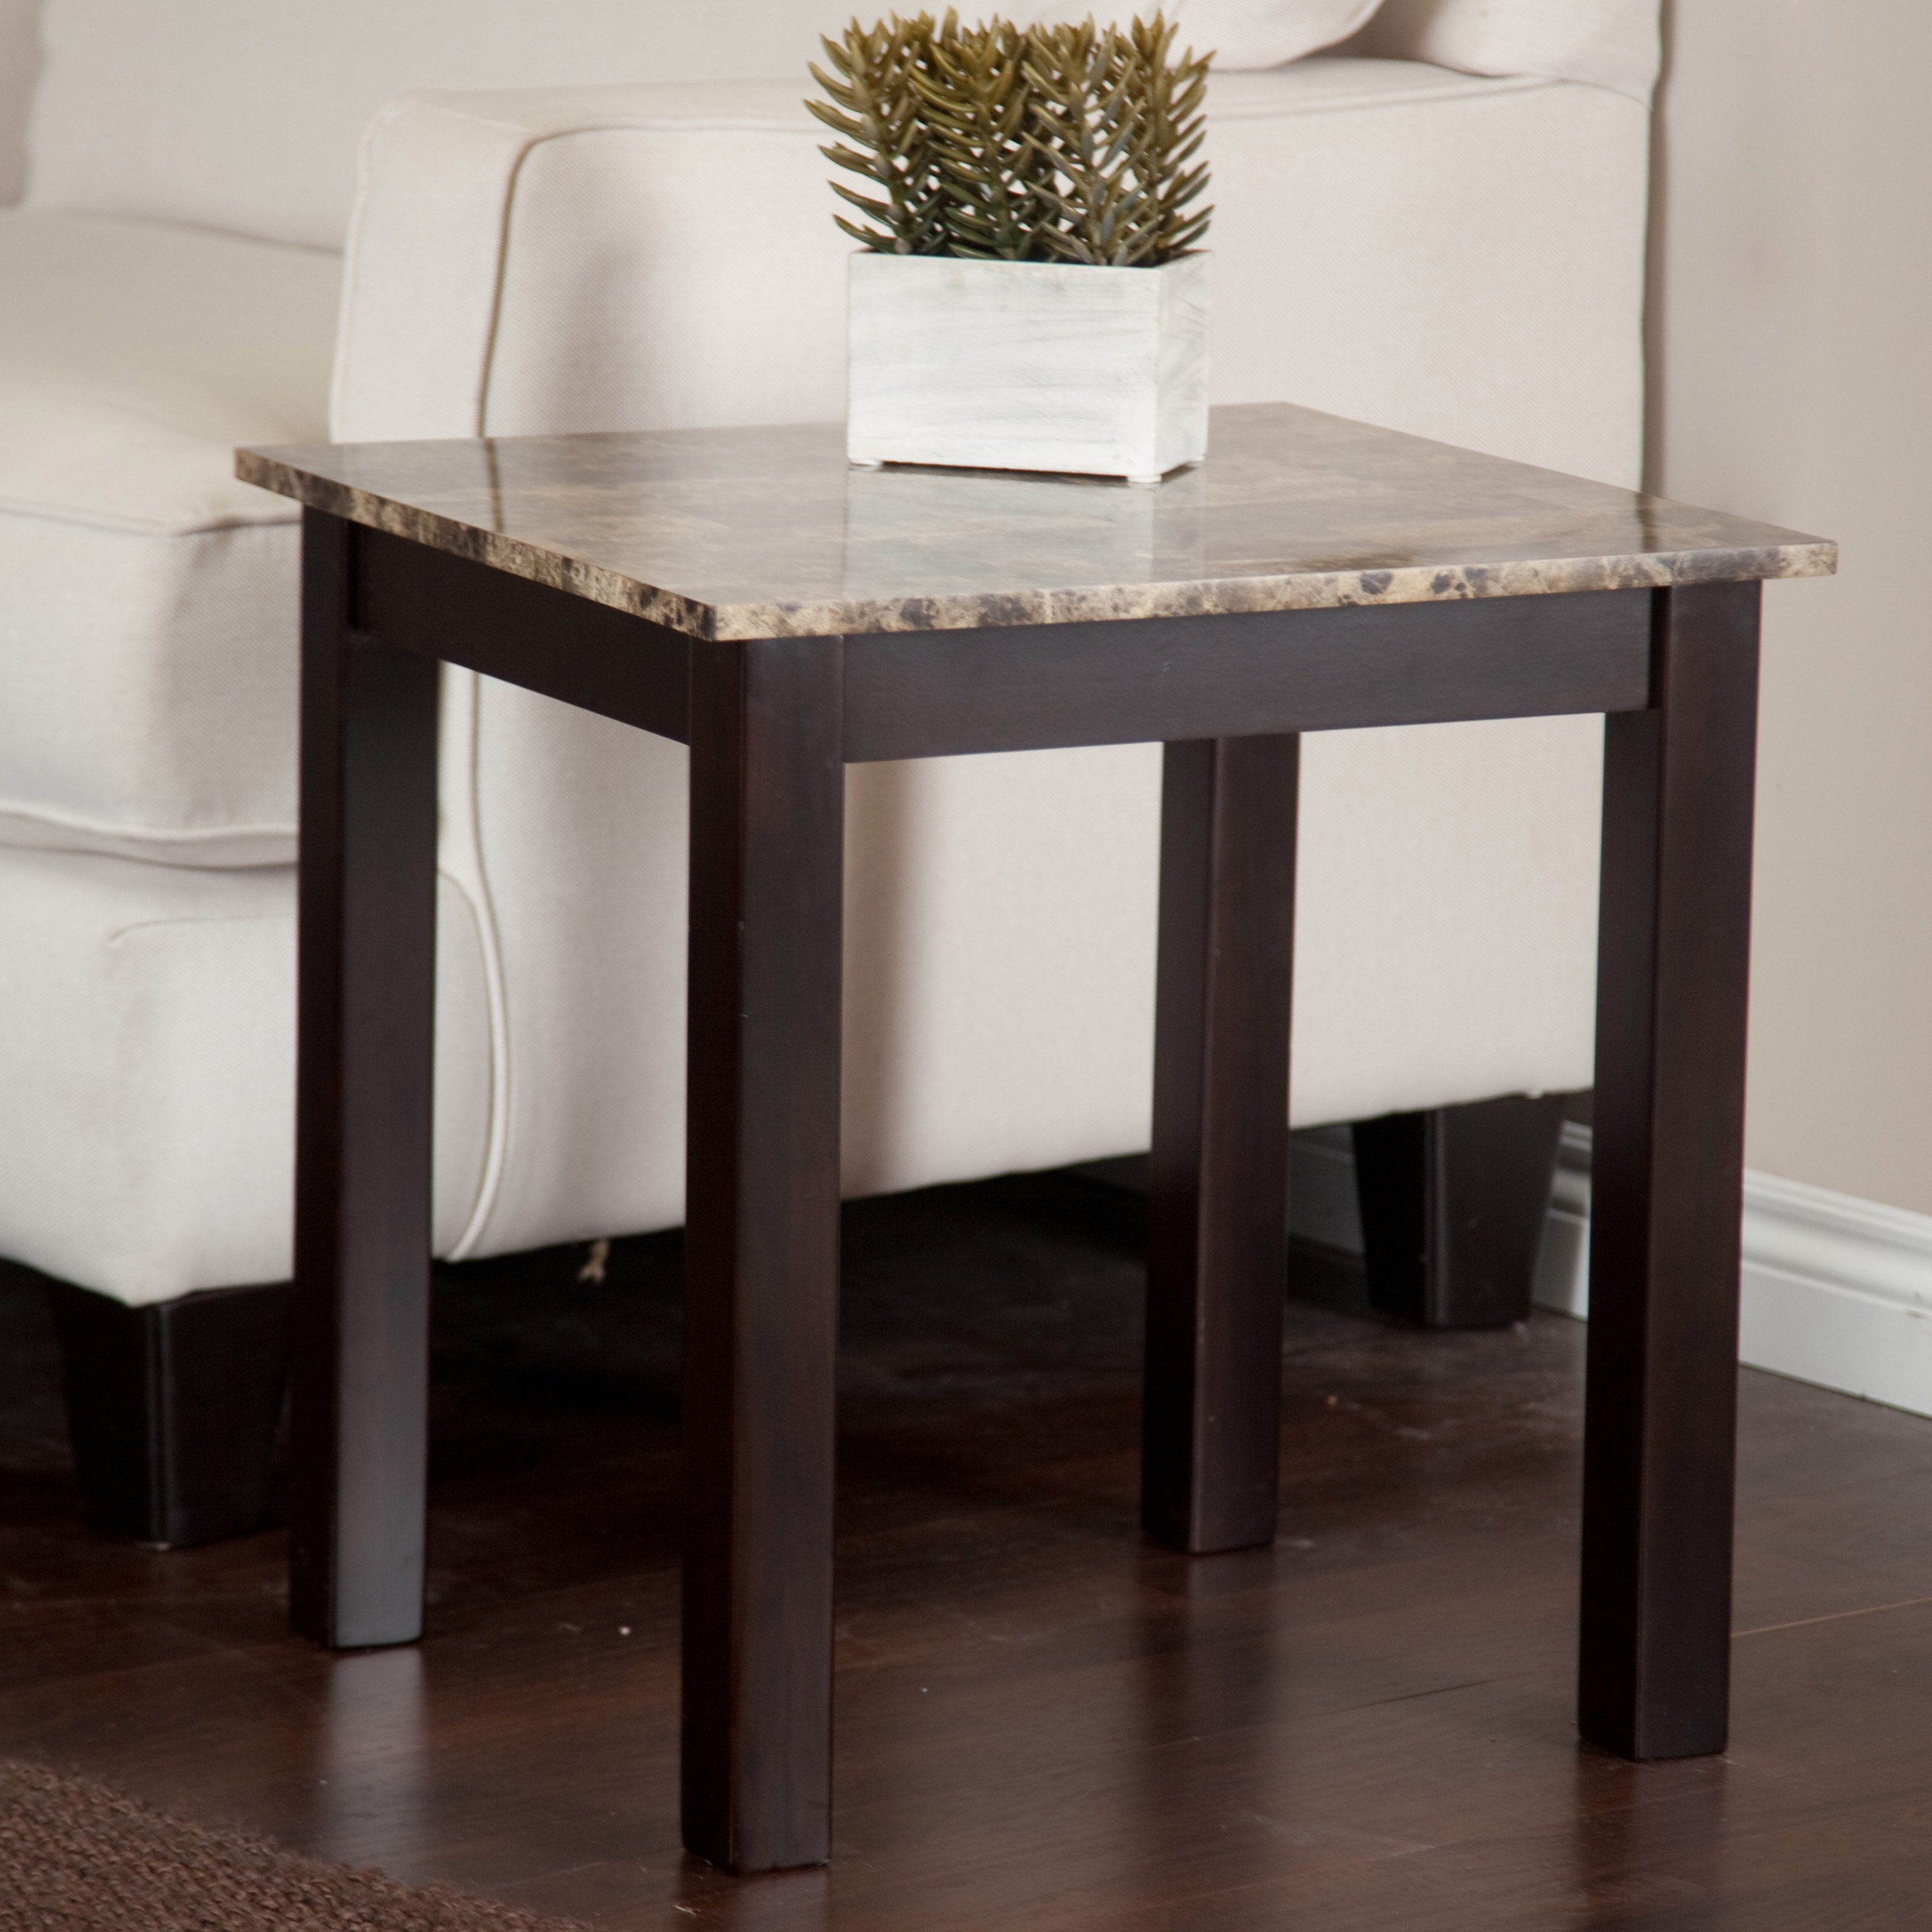 ikea black brown end table probably outrageous favorite monarch accent cappuccino marble top wood specialties small sectional sleeper sofa living room extra large dog house plans